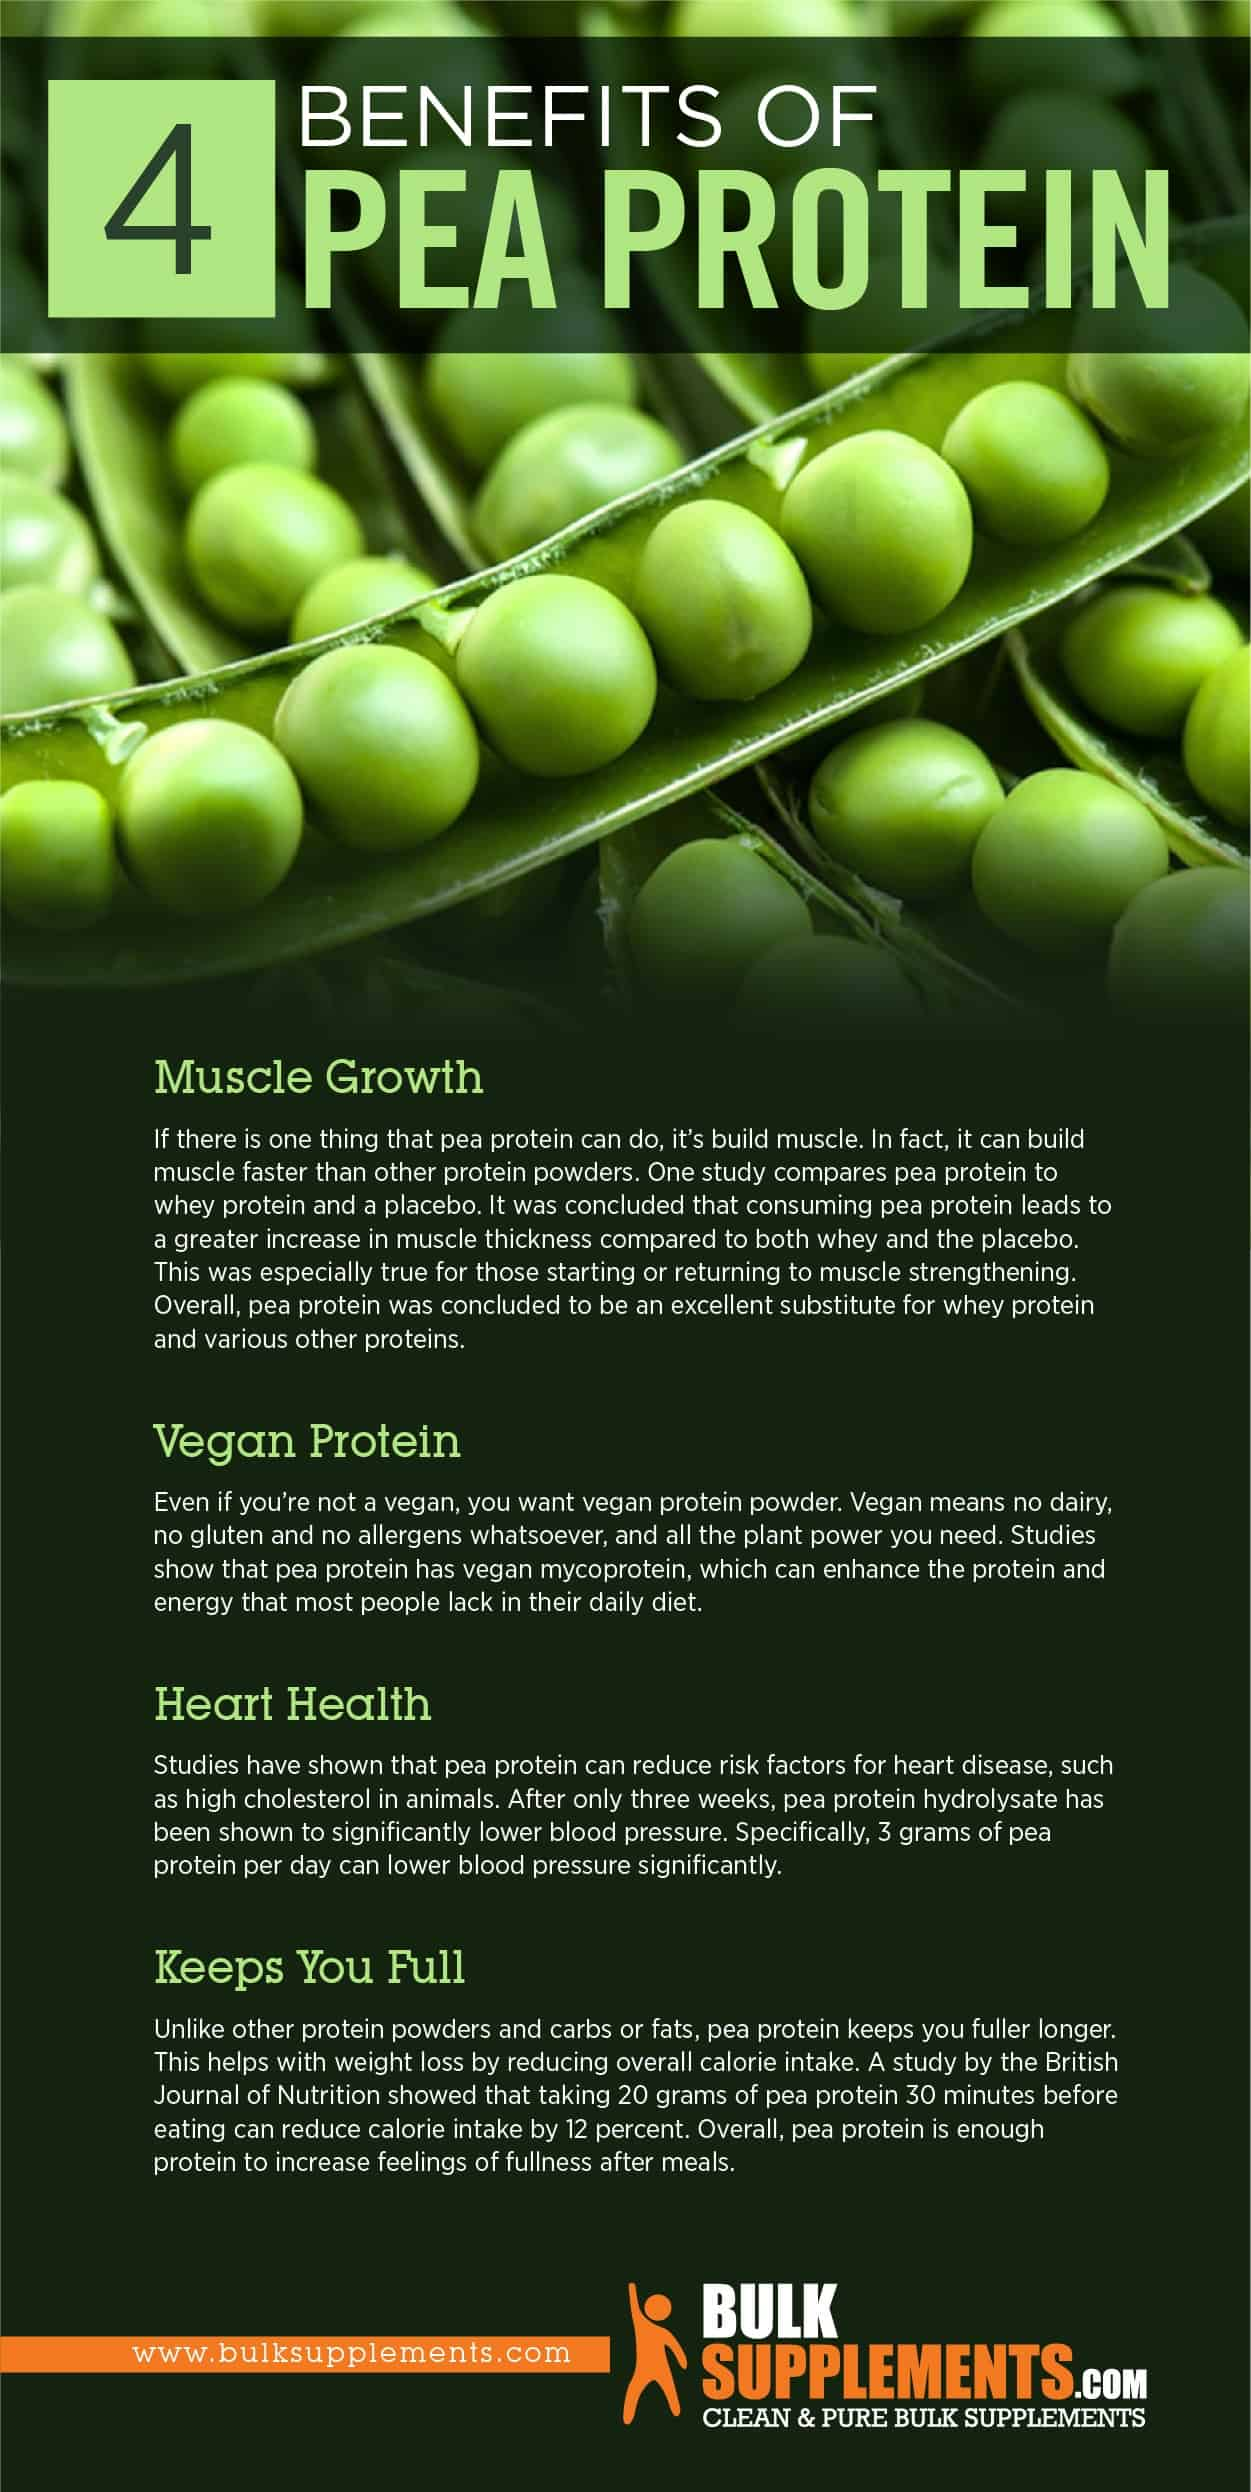 Benefits of Pea Protein Powder